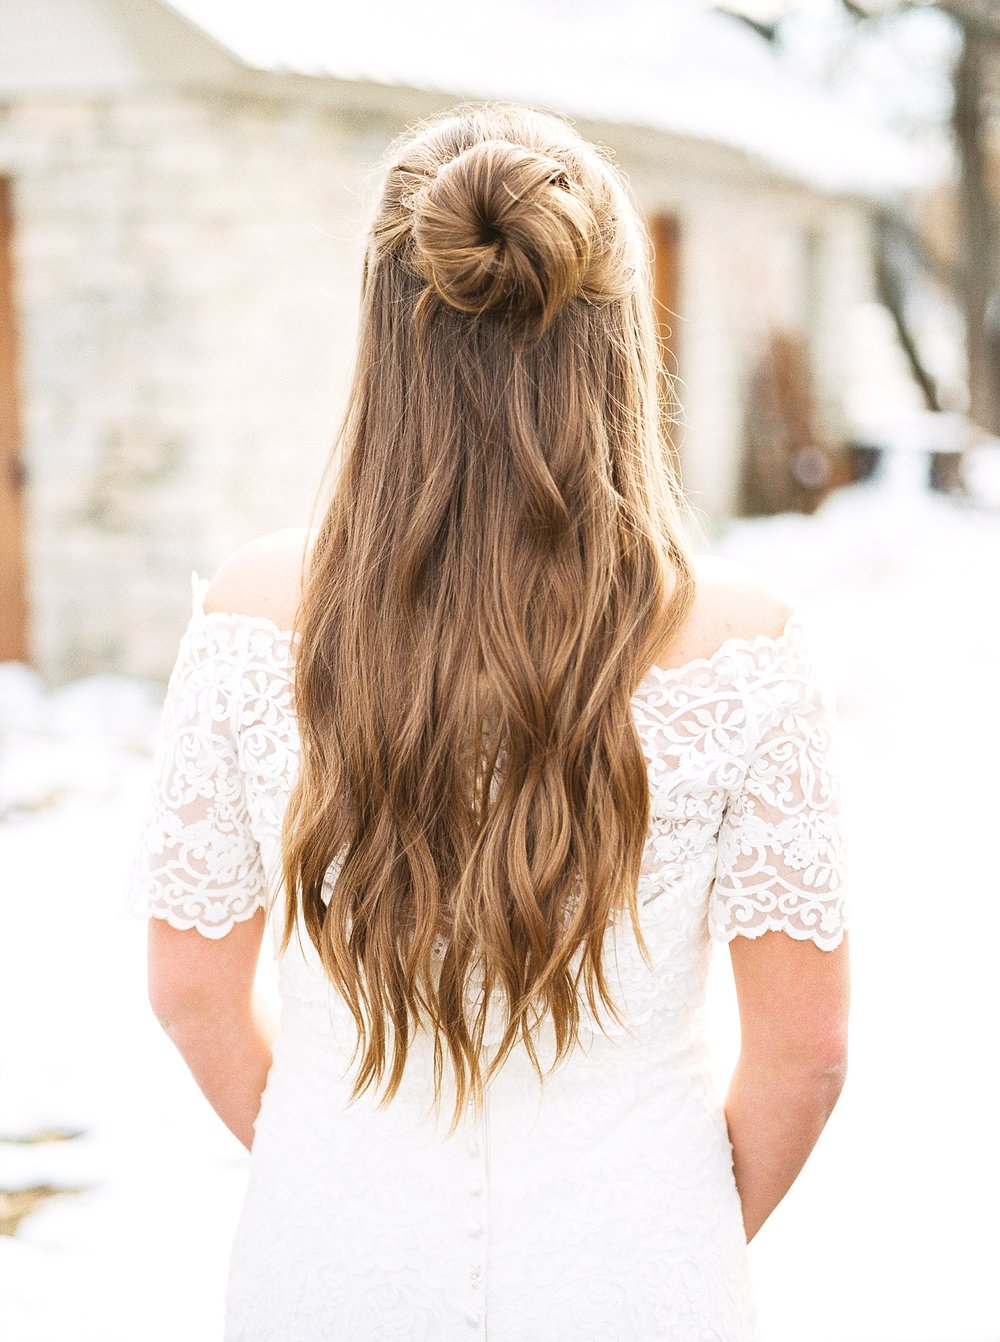 Snowy Winter Wedding at Wildcliff Events Lake With Earthy Jewel Tones and Organic Refined Style by Kelsi Kliethermes Photography Kansas City Missouri Wedding Photographer_0143.jpg